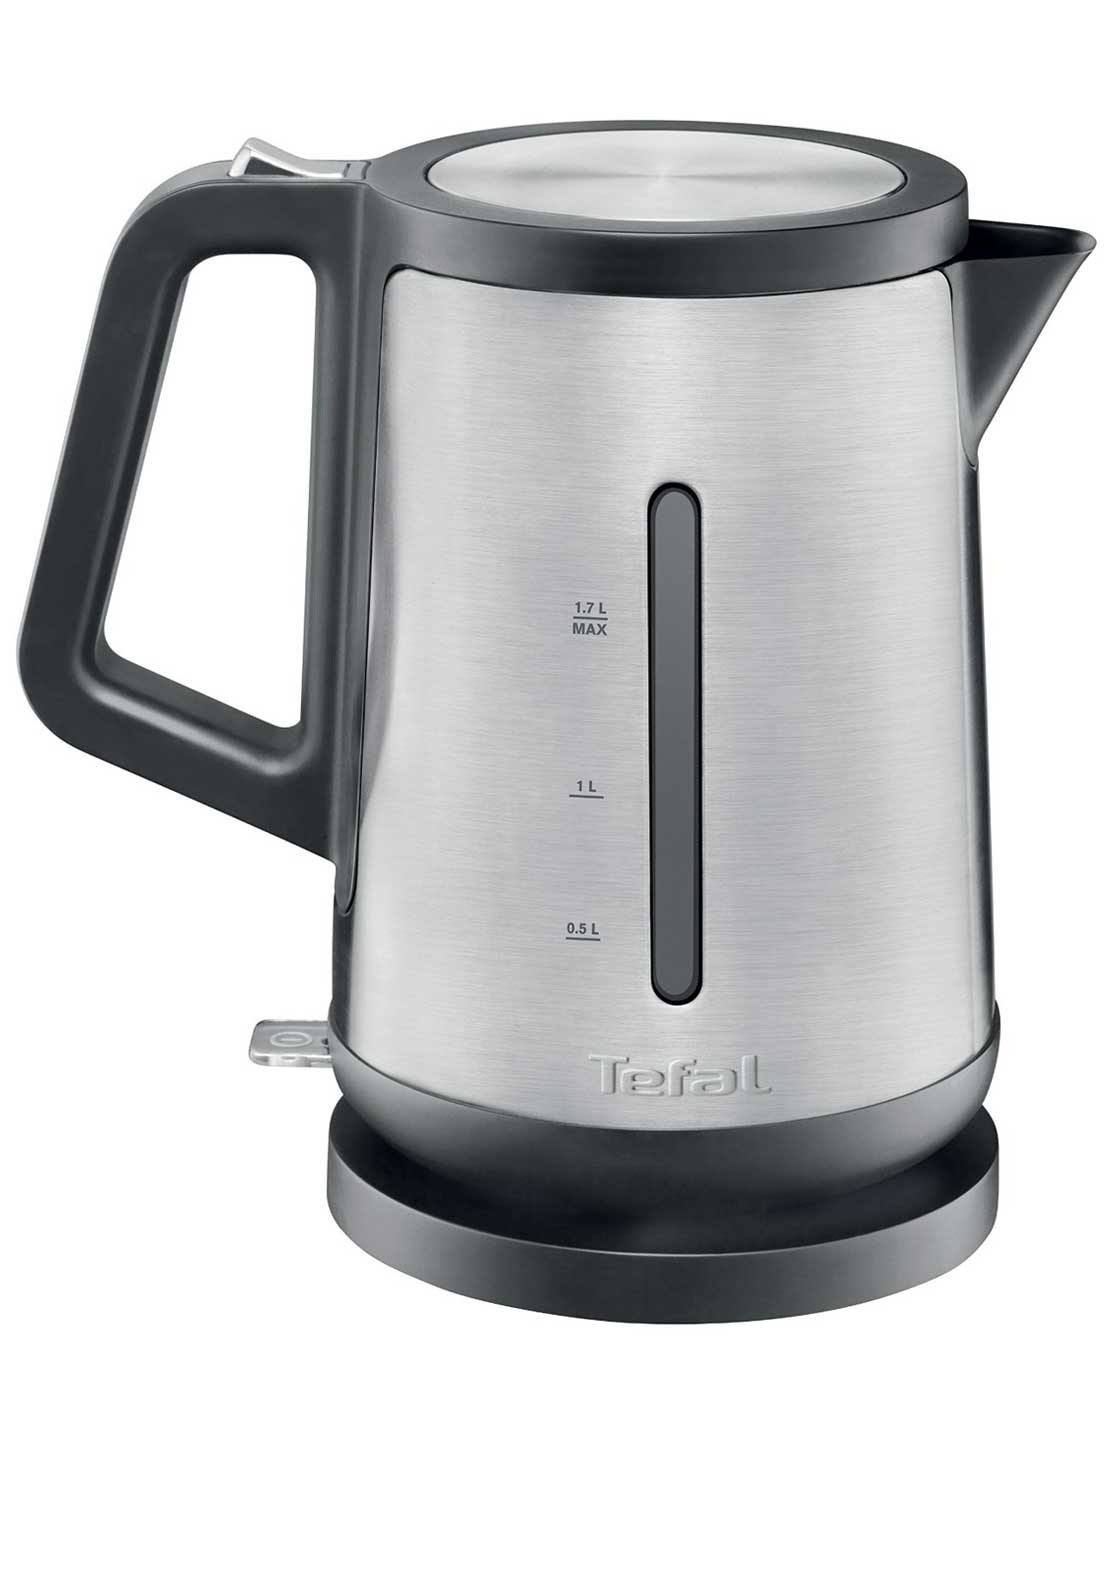 Tefal 1.7L Prelude Electric Kettle, Stainless Steel Silver